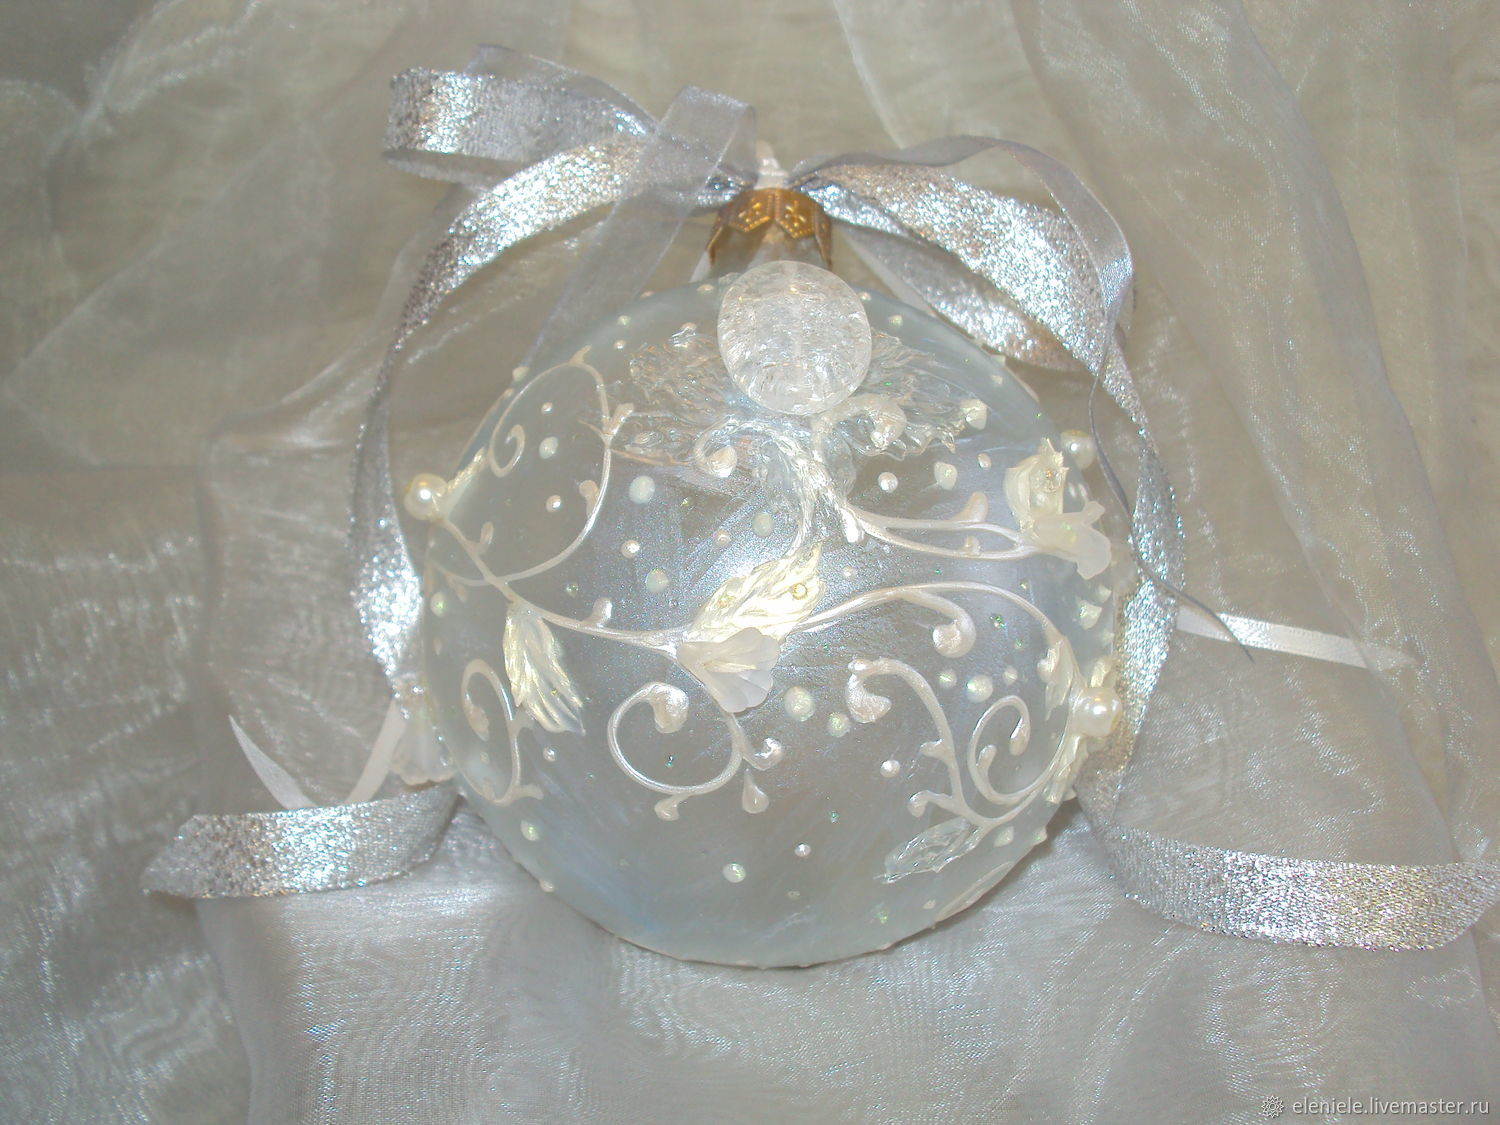 Ball glass painted Ice magic, Christmas decorations, Moscow,  Фото №1